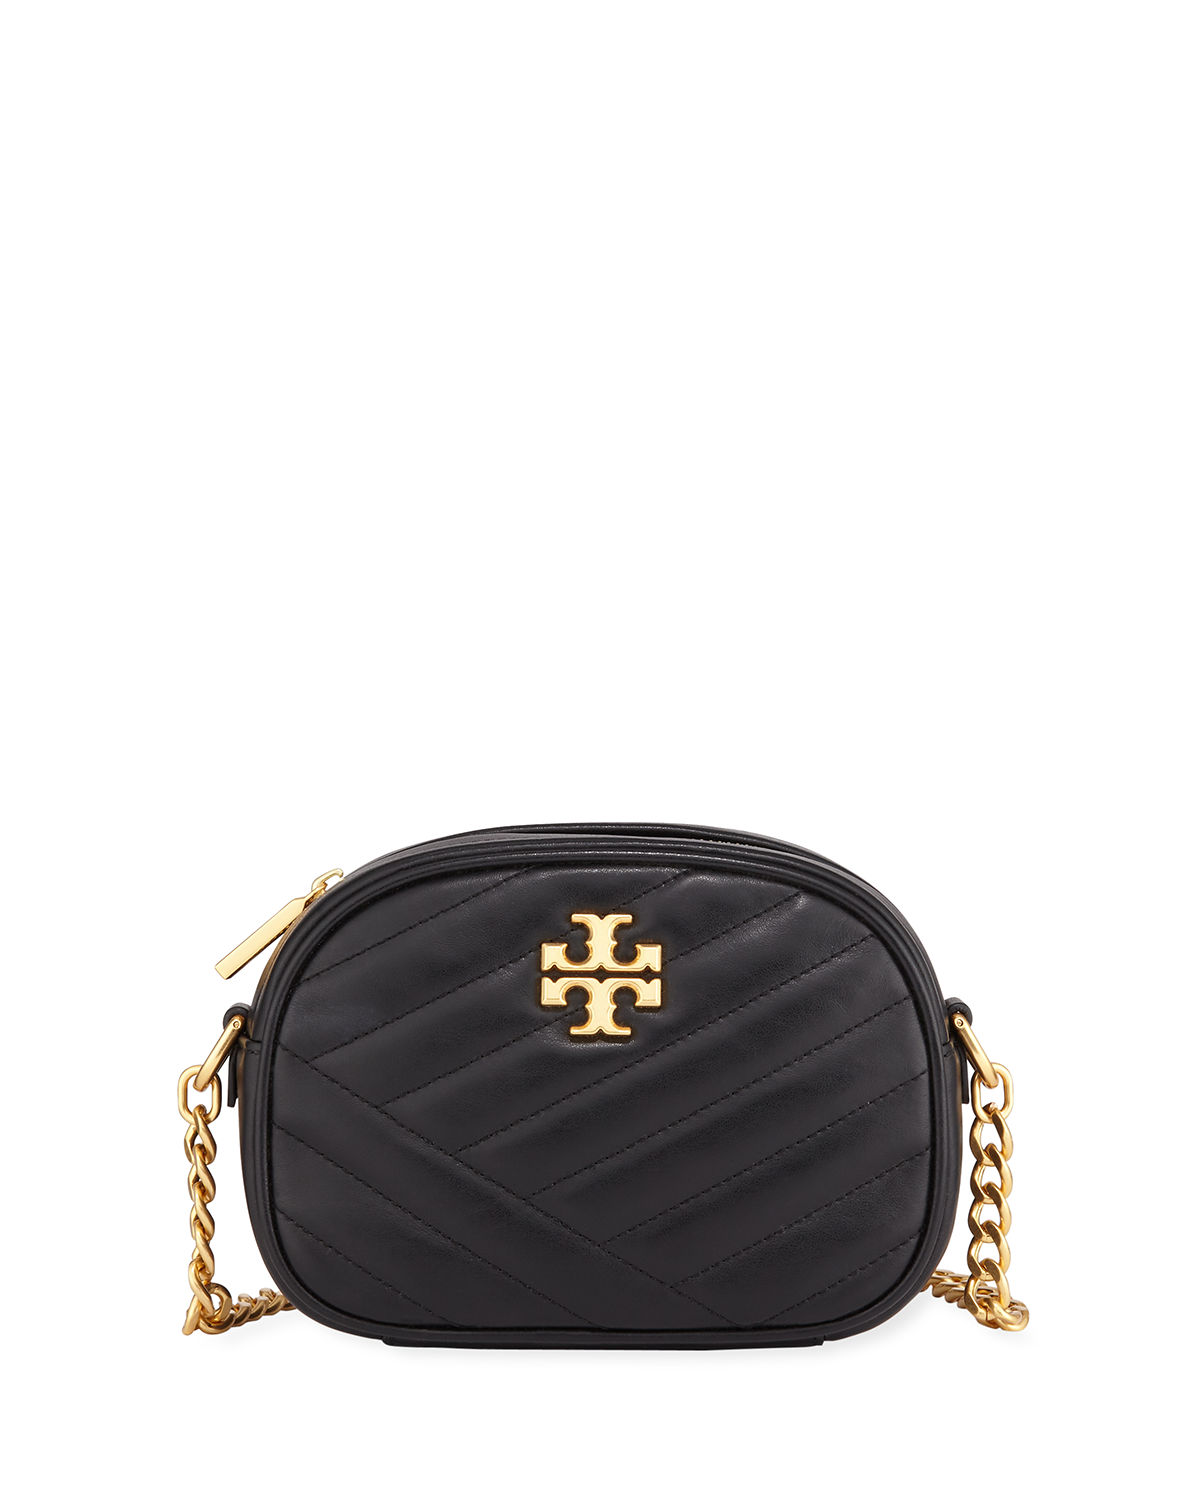 Tory Burch Kira Quilted Leather Xs Crossbody Bag Neiman